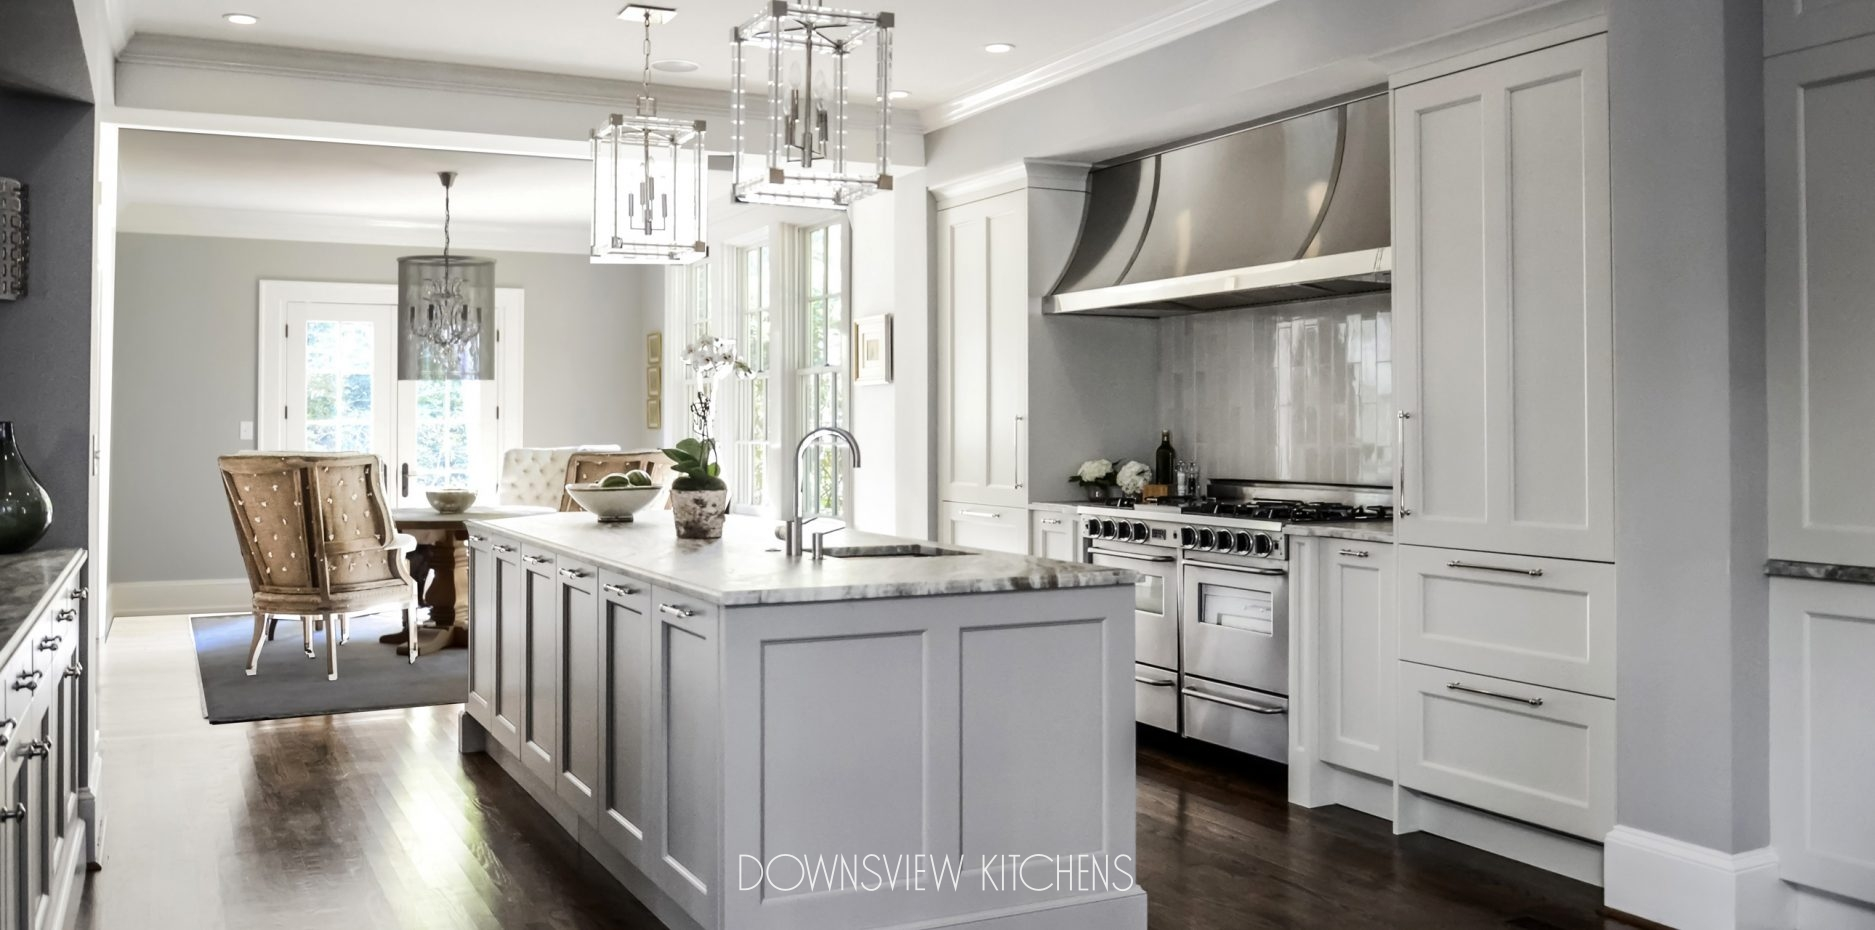 Calming Influence Downsview Kitchens And Fine Custom